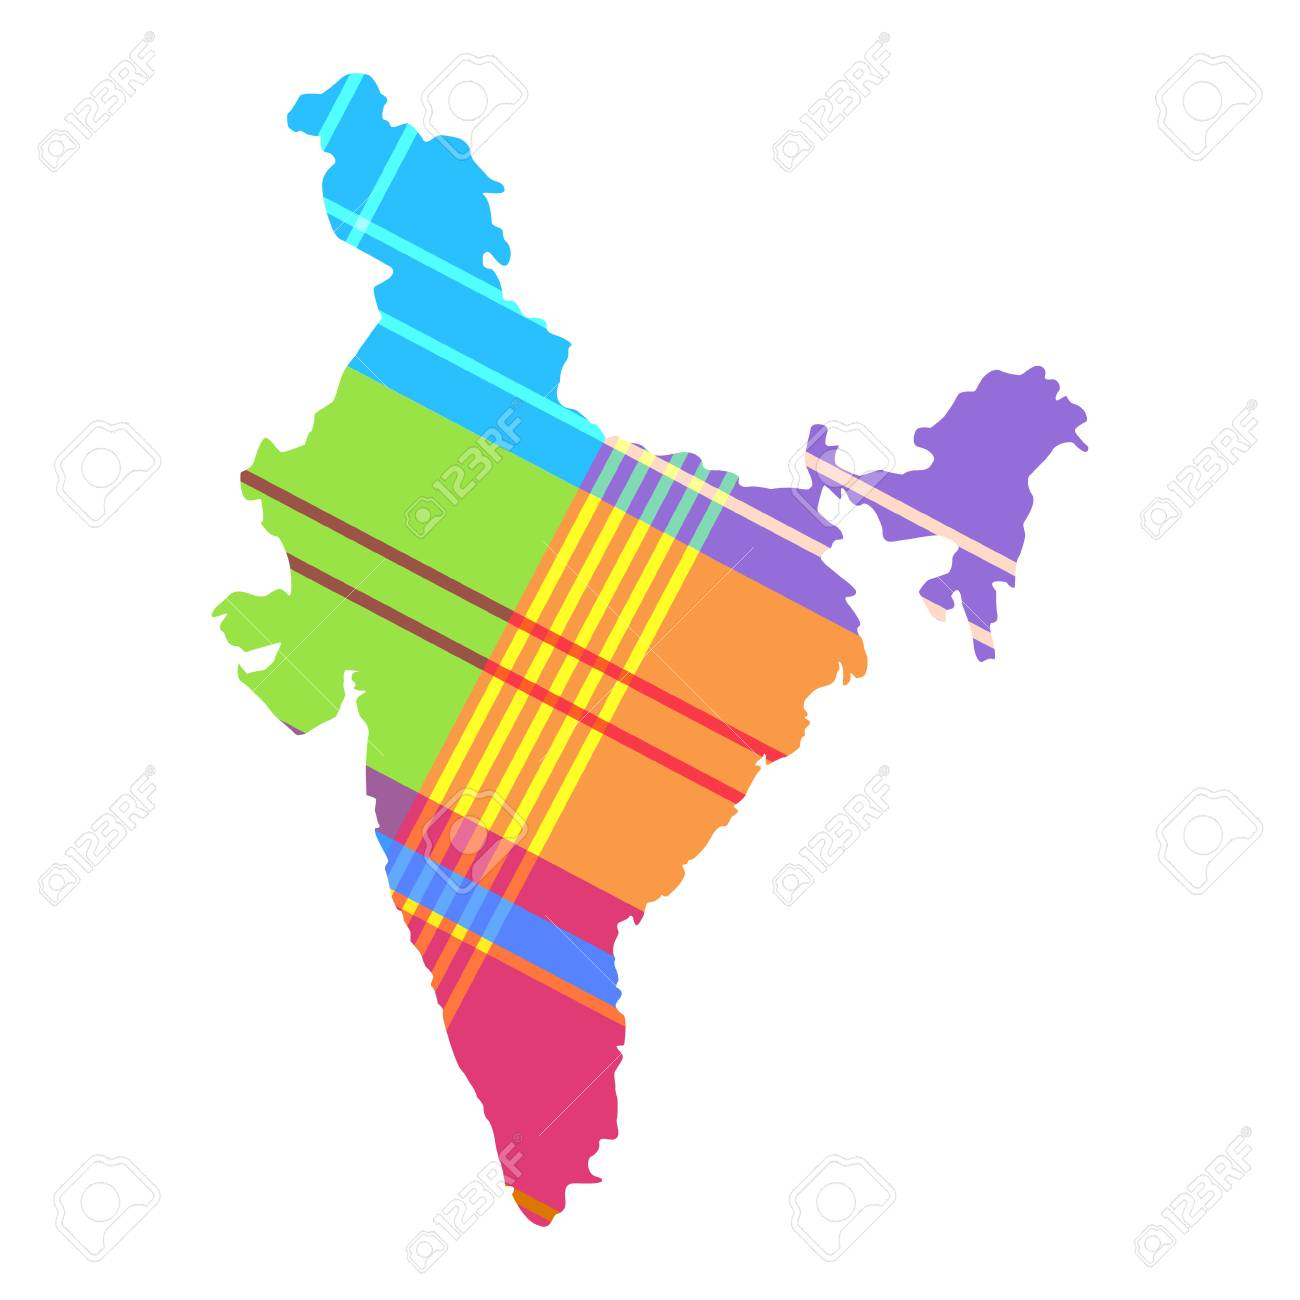 map of India the pattern of the Madras cell. Bright colors of.. Madras On India Map on oslo norway on map, bora bora tahiti on map, medellin colombia on map, xiamen china on map, dublin ireland on map, bremen germany on map, madrid spain on map, port elizabeth south africa on map, copenhagen denmark on map, kuala lumpur malaysia on map, guangzhou china on map, bucharest romania on map, stockholm sweden on map, buenos aires argentina on map, phuket thailand on map, nice france on map, jakarta indonesia on map, shannon ireland on map, munich germany on map, cape town south africa on map,